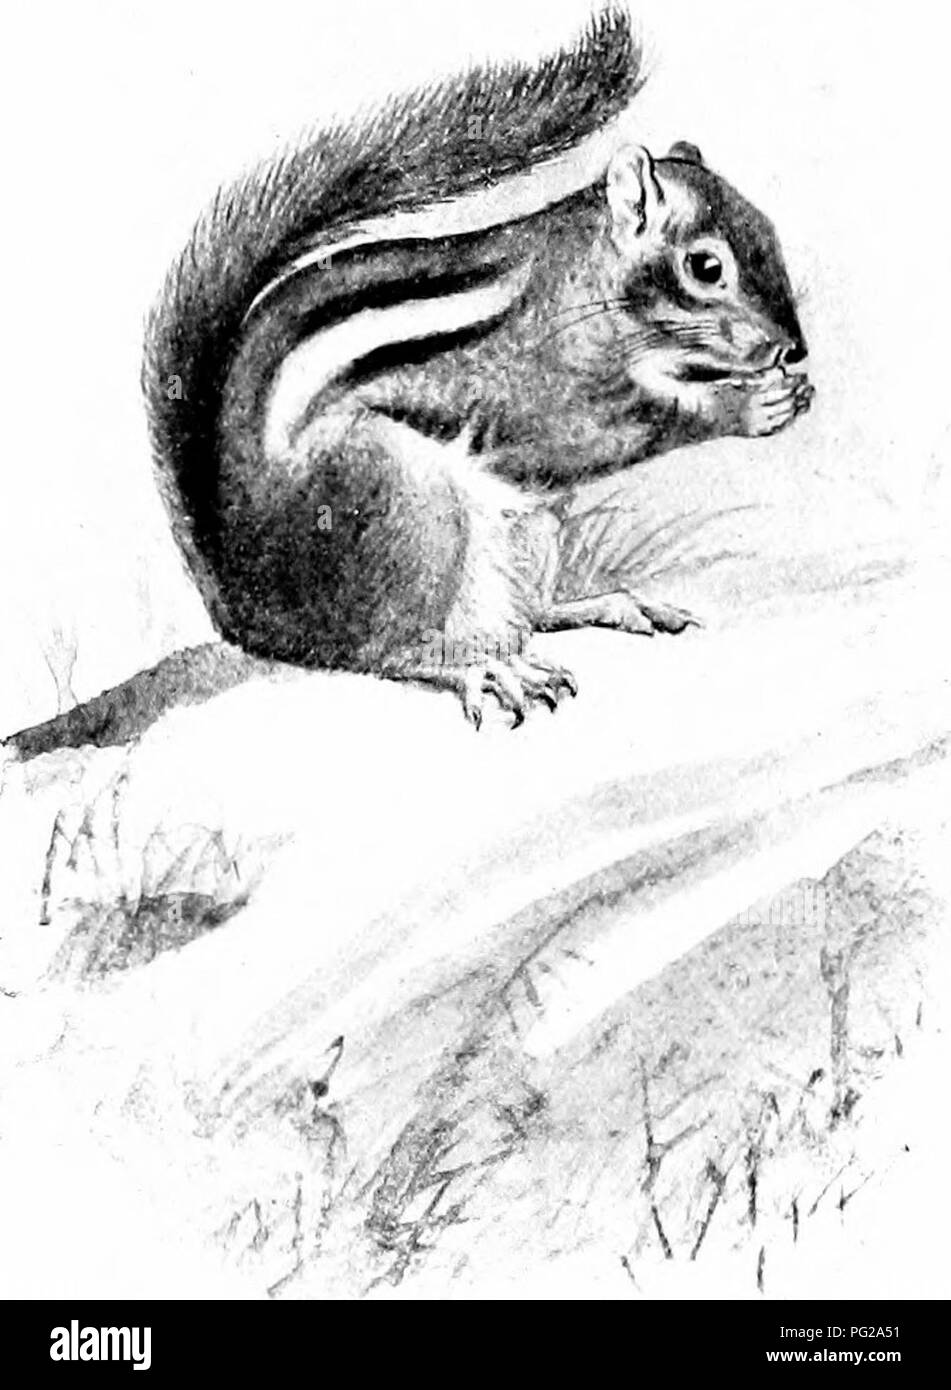 . The American natural history; a foundation of useful knowledge of the higher animals of North America. Natural history. 72 ORDERS OF MAMMALS—GXAWING ANIMALS inches, tail, 14^- inches, and it weighs 4-'r pounds. The most hcautiful sciuirrel in the world is Prevost's Squirrel' of the Malay Peninsula, a species about the size of a small gray squirrel. Its colors form a beautiful pattern of gray, brown, black, white and buft'. Rock Squirrels, or Chipmunks. Next below the tree squirrels comes a large group of small squirrels which live on the ground,. EASTERN CHIPMUNK. preferably amongst rocks, i - Stock Image